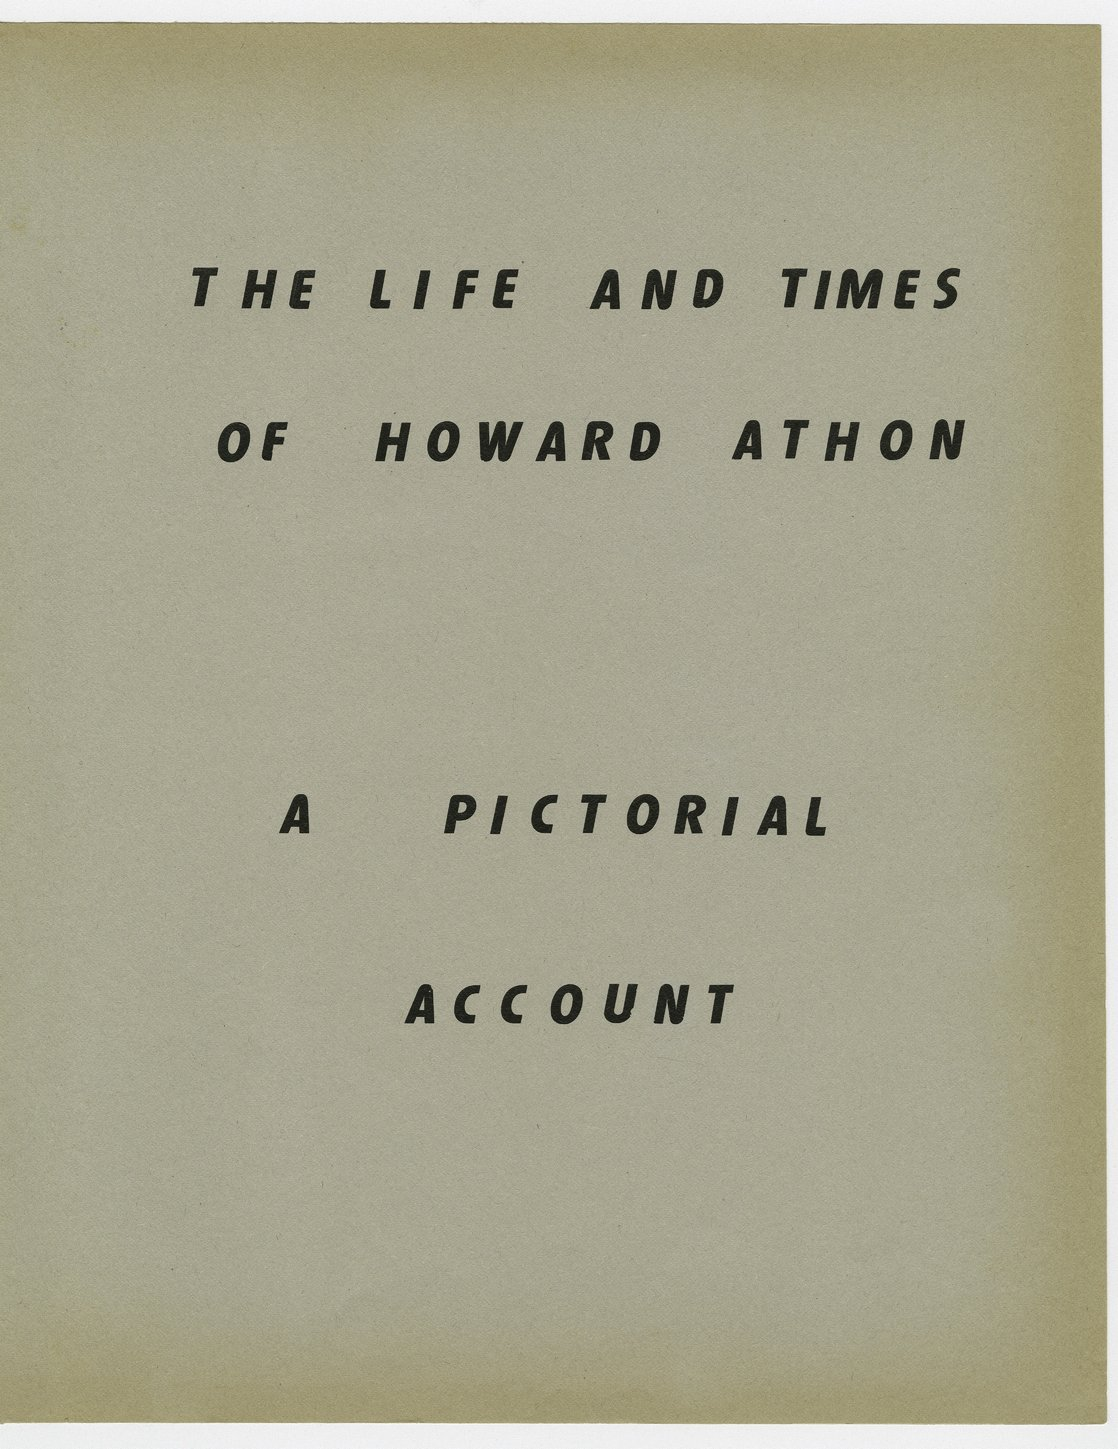 The life and times of Howard Athon, a pictorial account - Title page